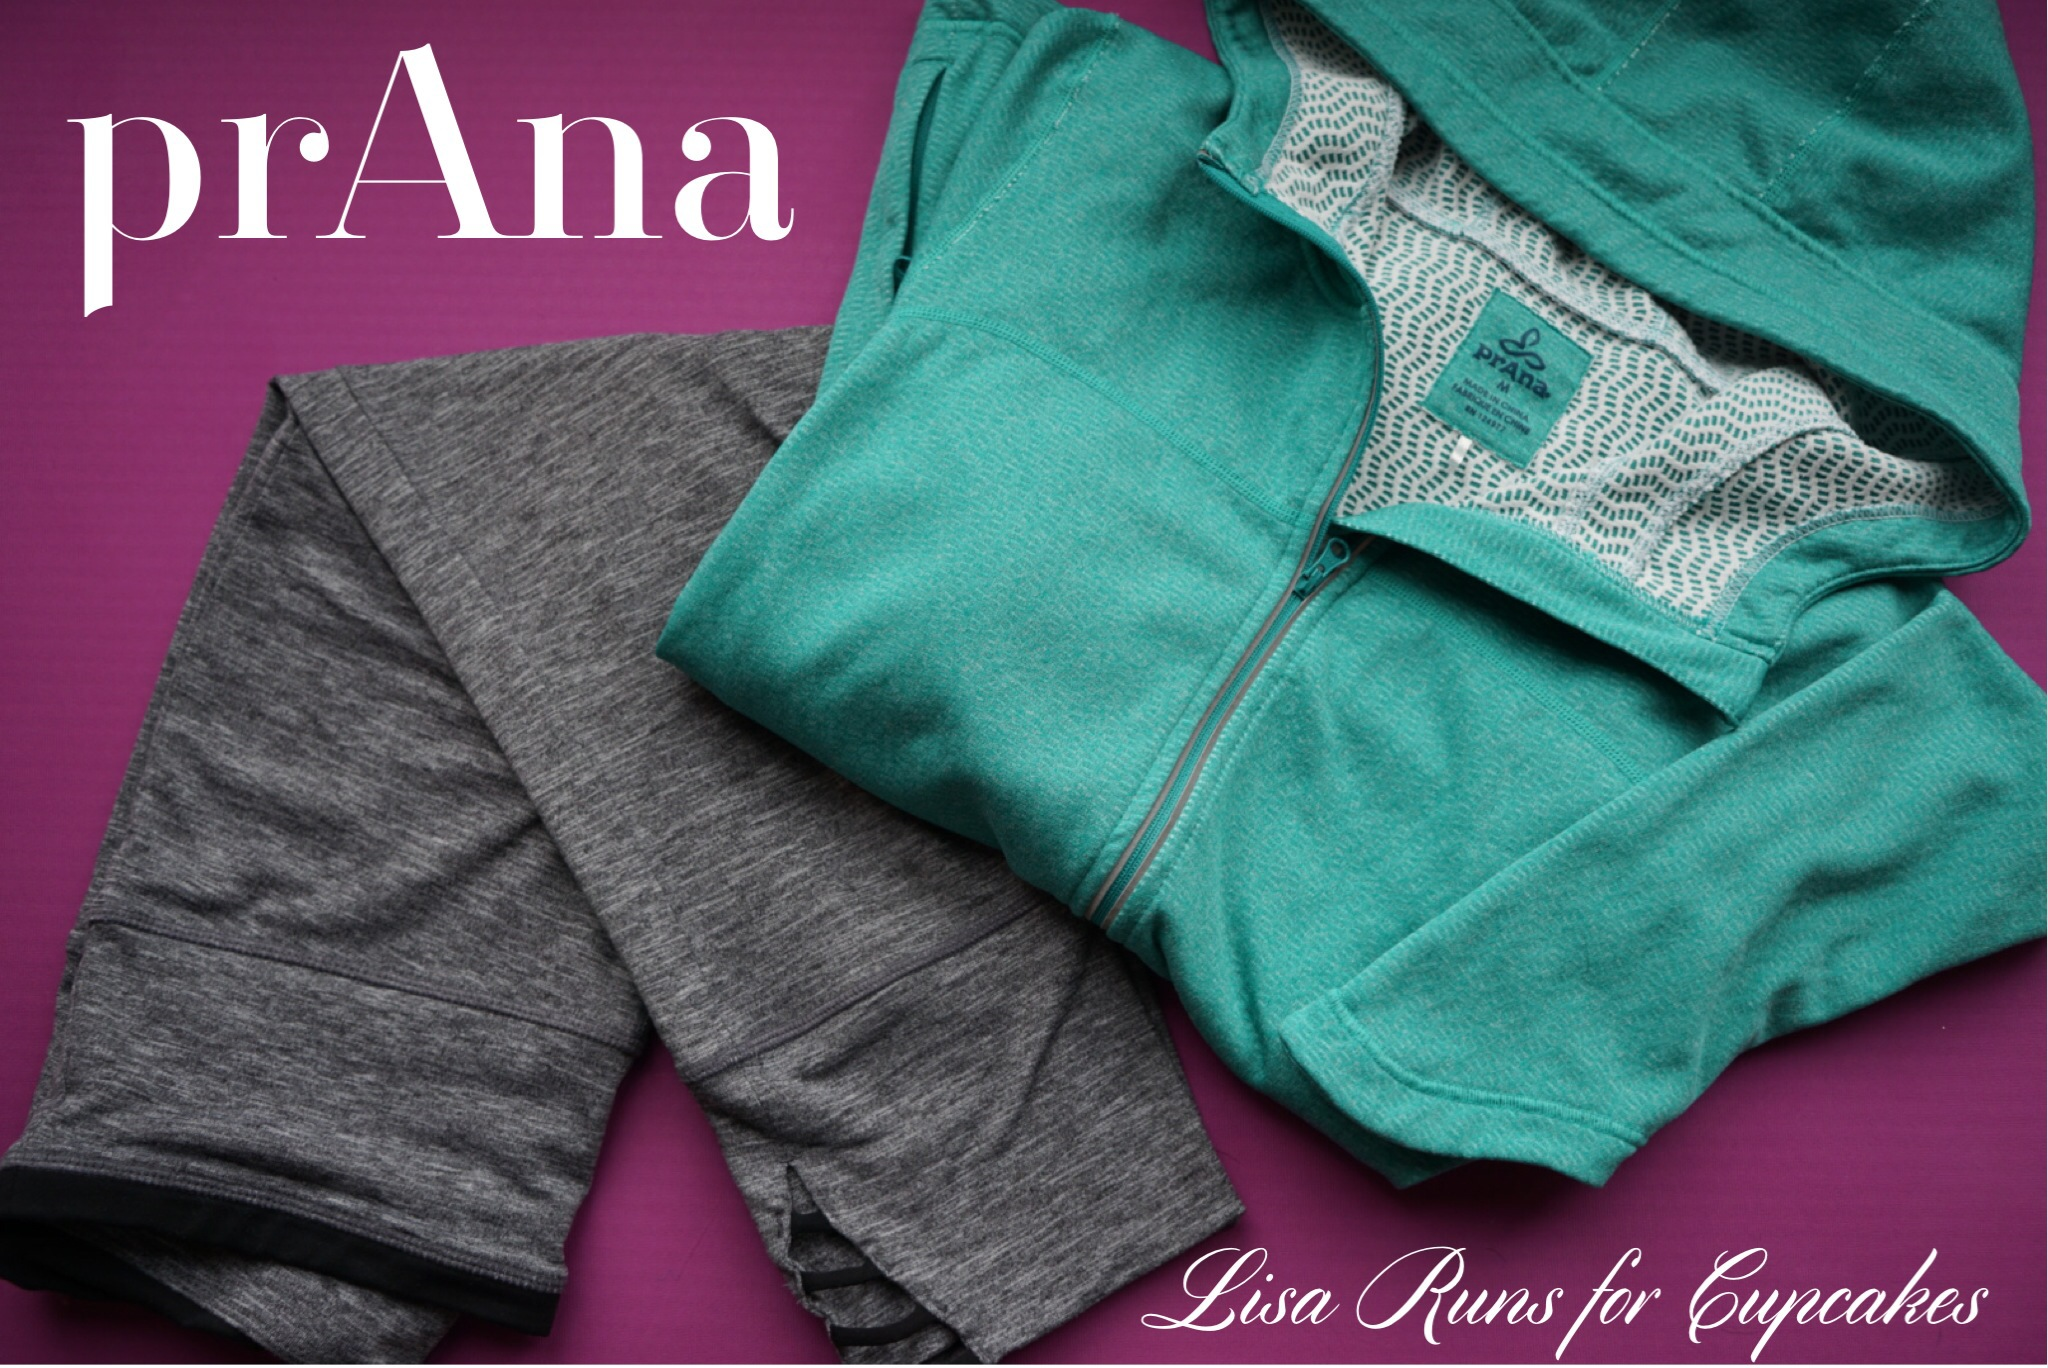 #taketheleap with prAna